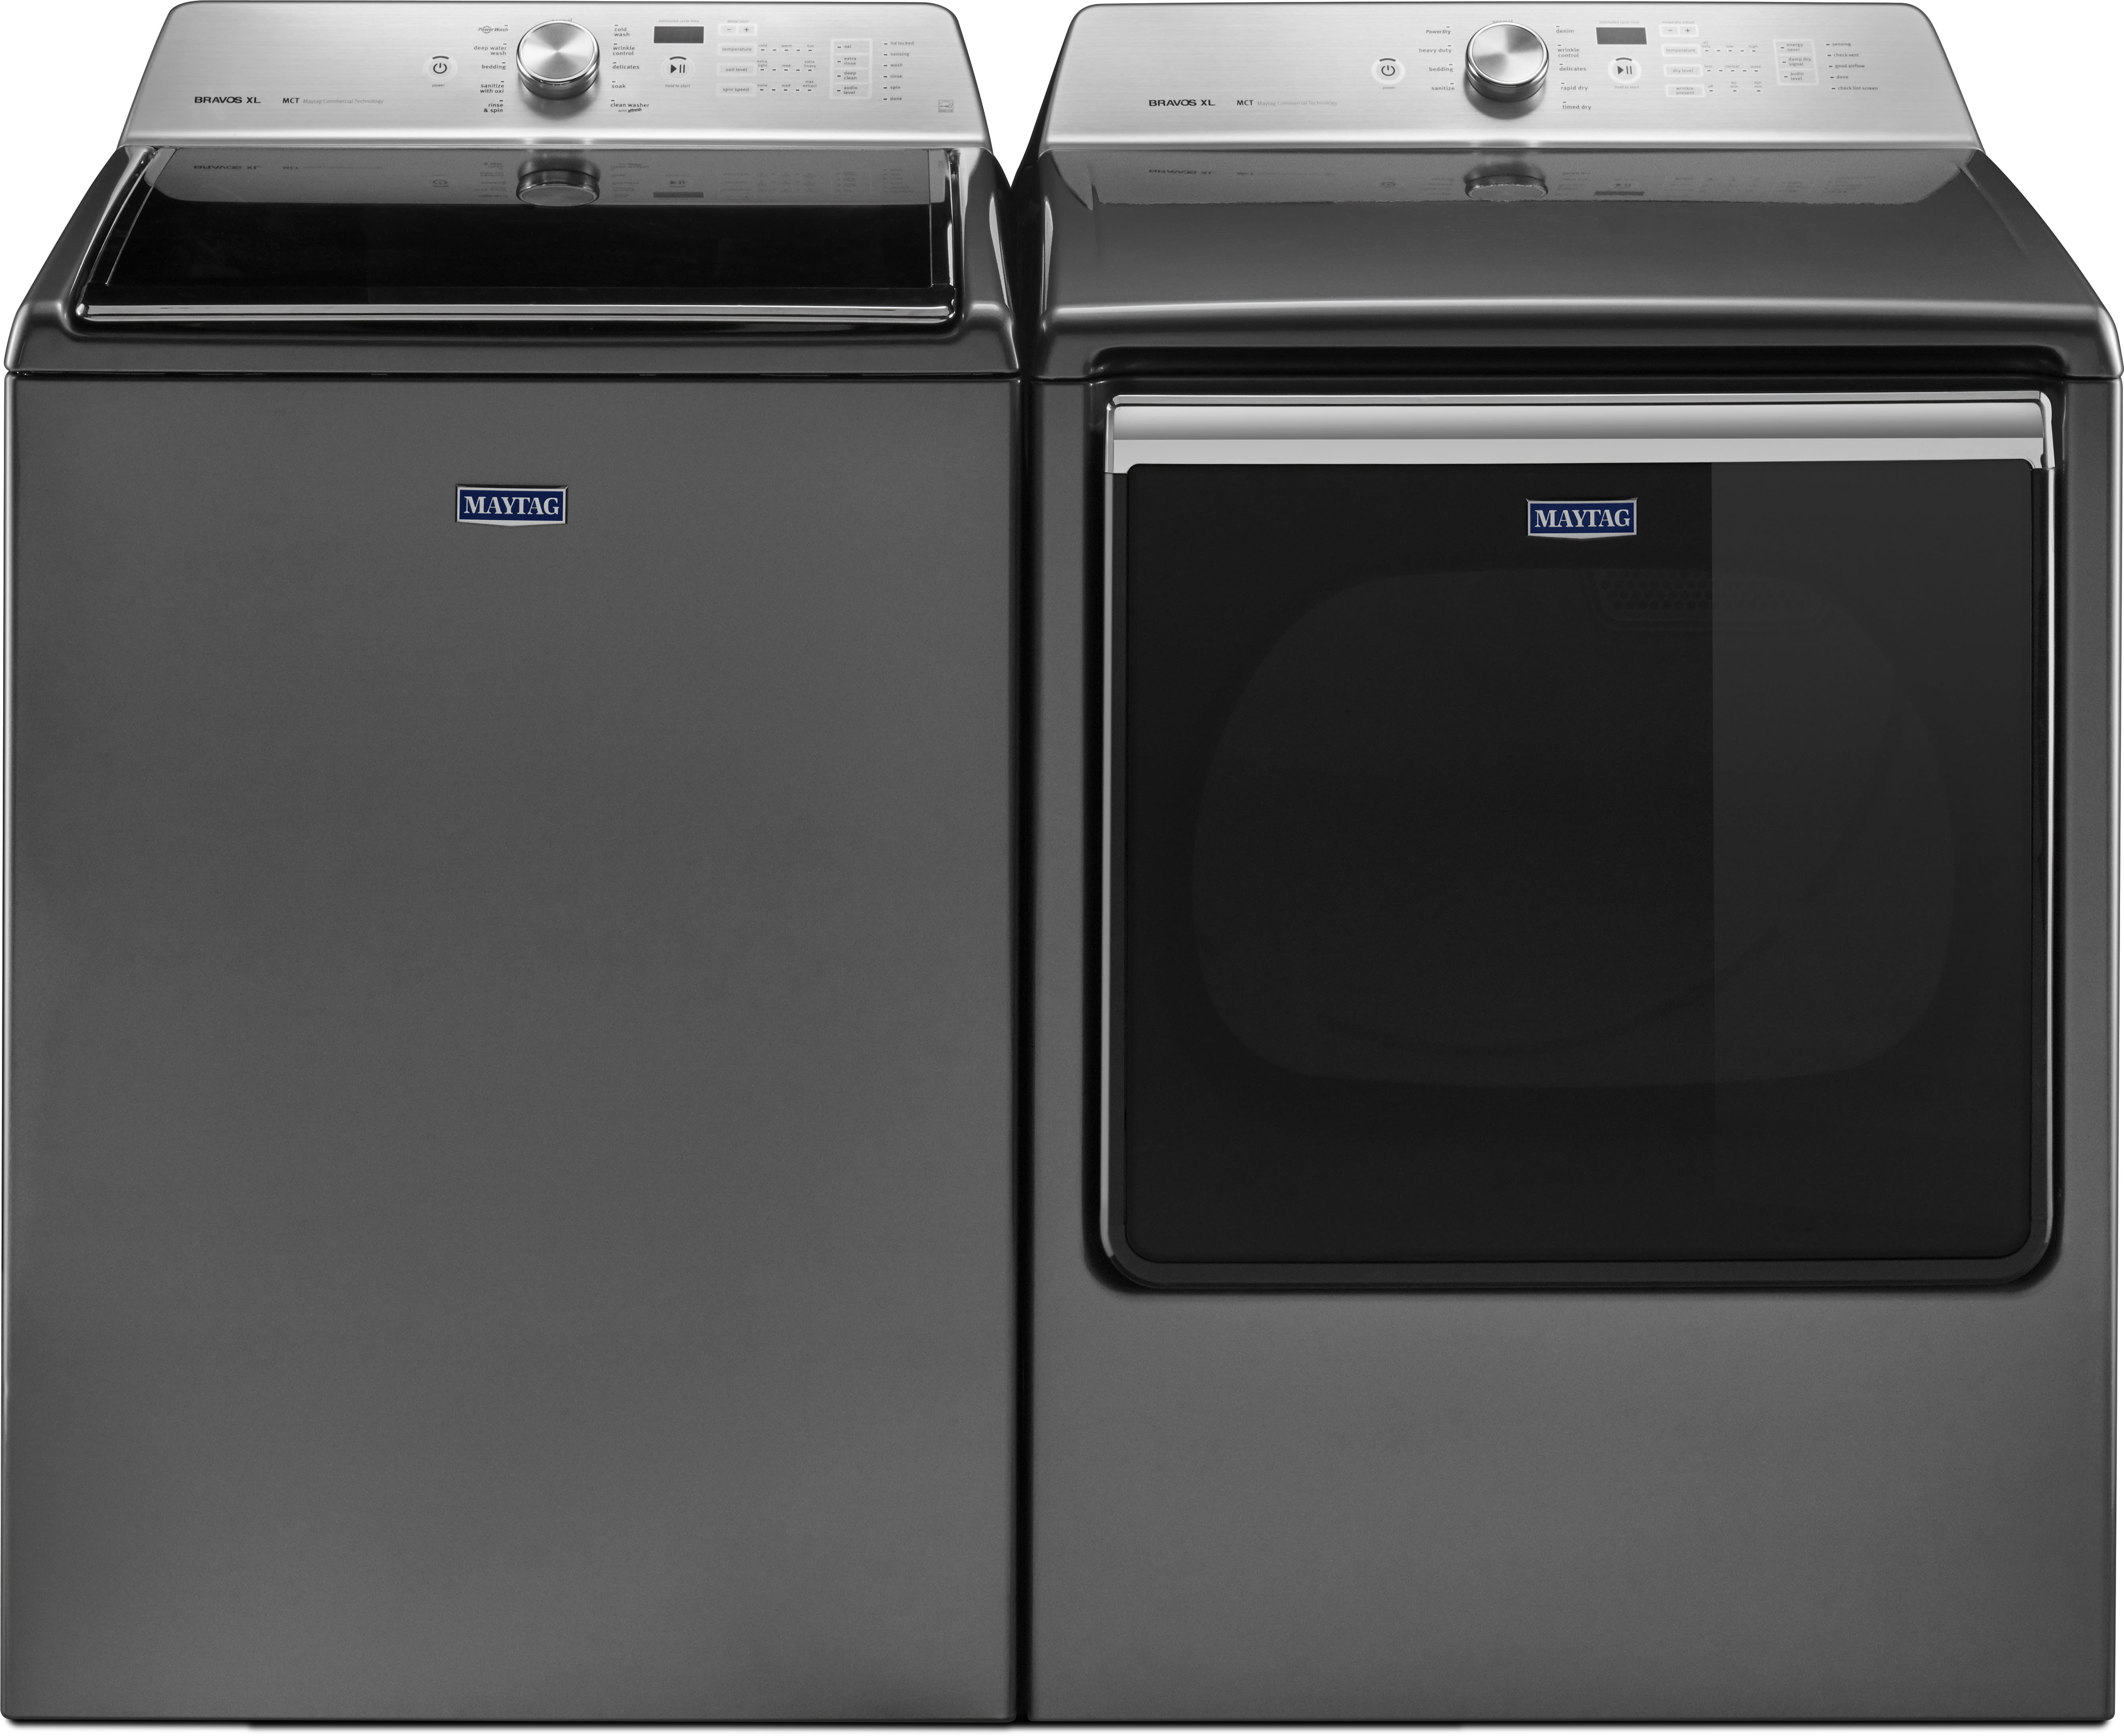 Maytag mawadrems1 side by side washer dryer set with top - Maytag whirlpool ...